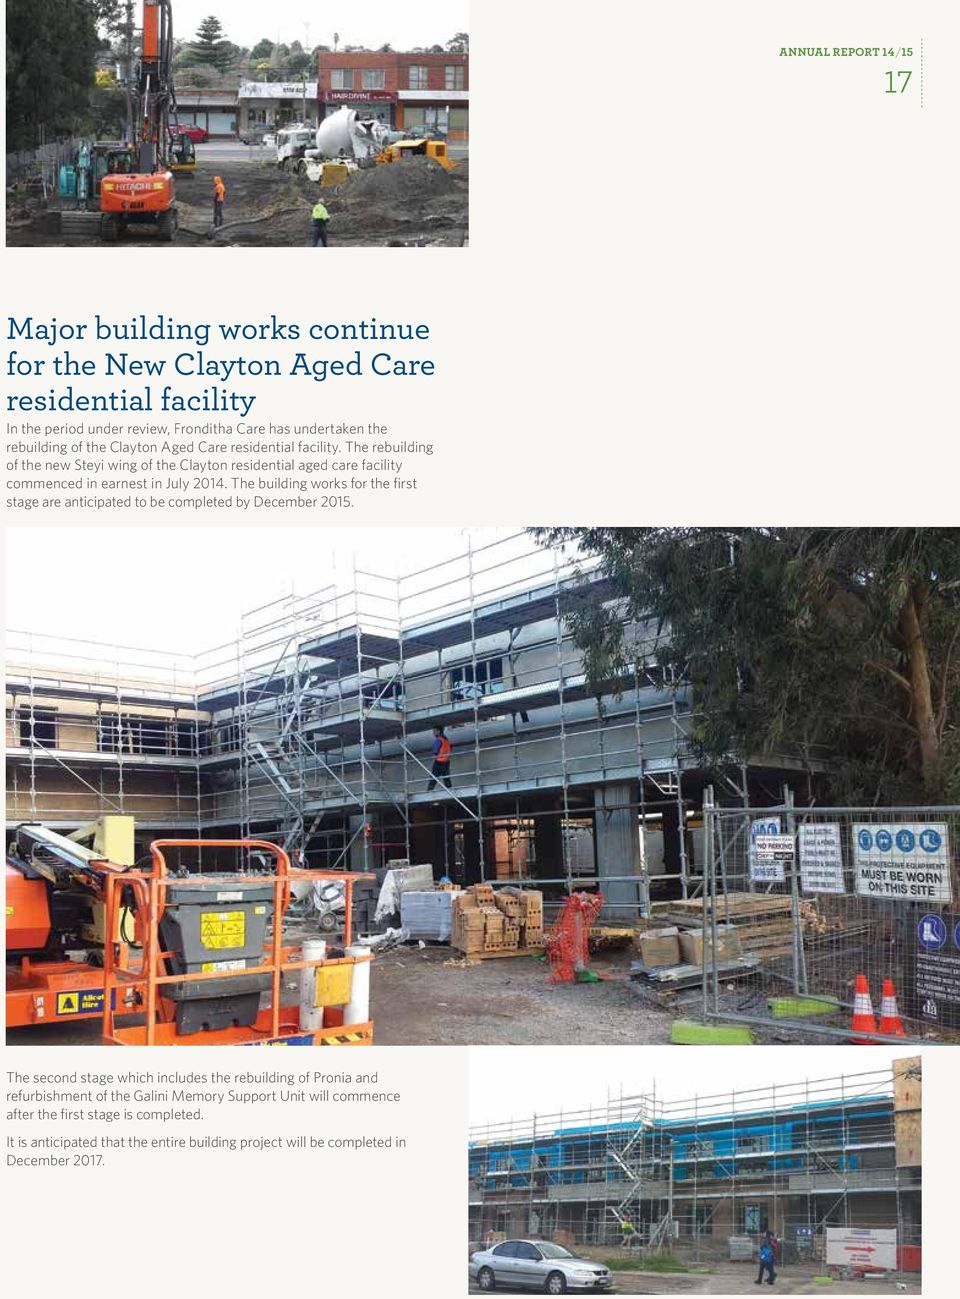 The rebuilding of the new Steyi wing of the Clayton residential aged care facility commenced in earnest in July 2014.